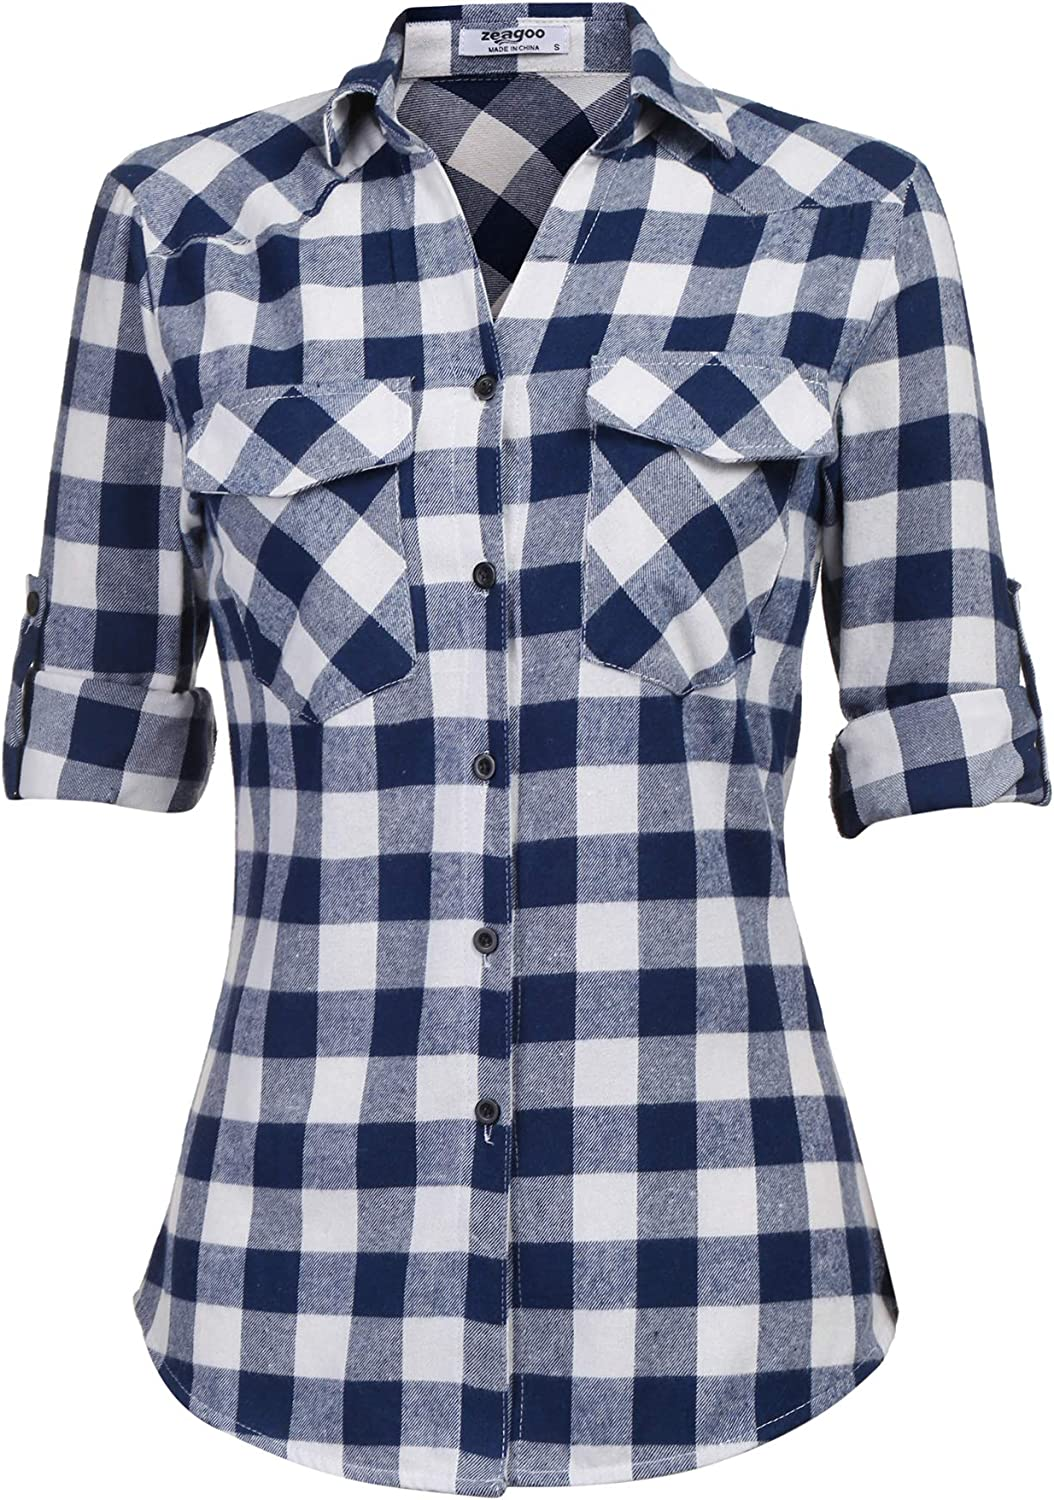 Zeagoo Womens Flannels Long/Roll Up Sleeve Plaid Shirts Cotton Check Gingham Top S-3XL